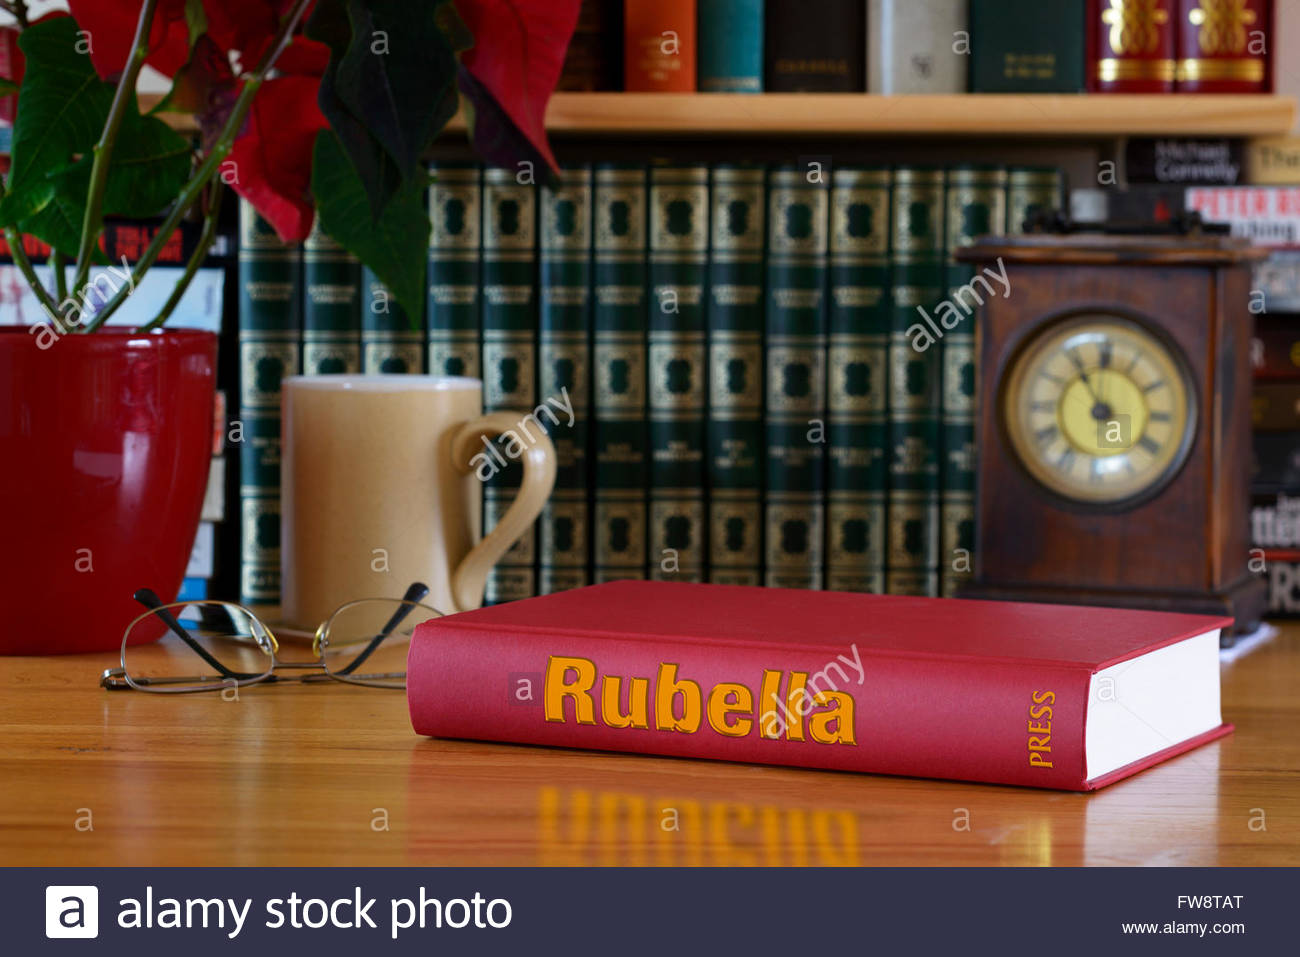 Rubella book title on desk, England - Stock Image